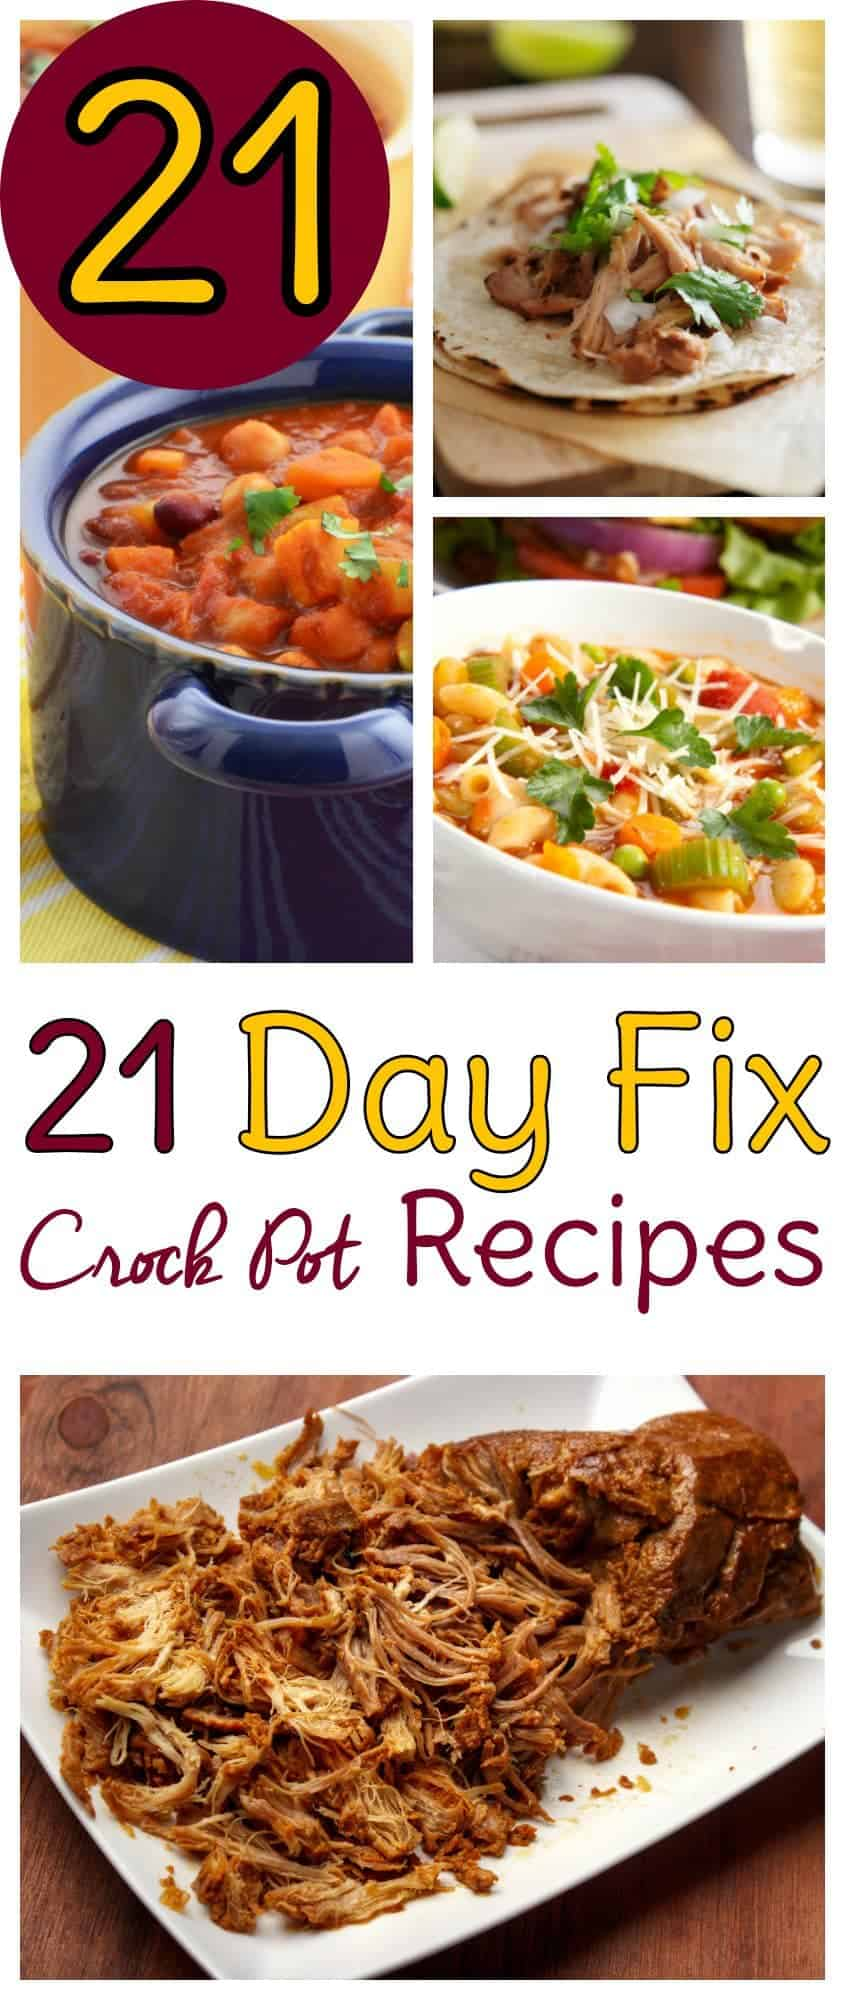 21 Day Fix Crockpot recipes! Use these healthy Crock pot recipes for your 21 Day Fix and set yourself up for success.